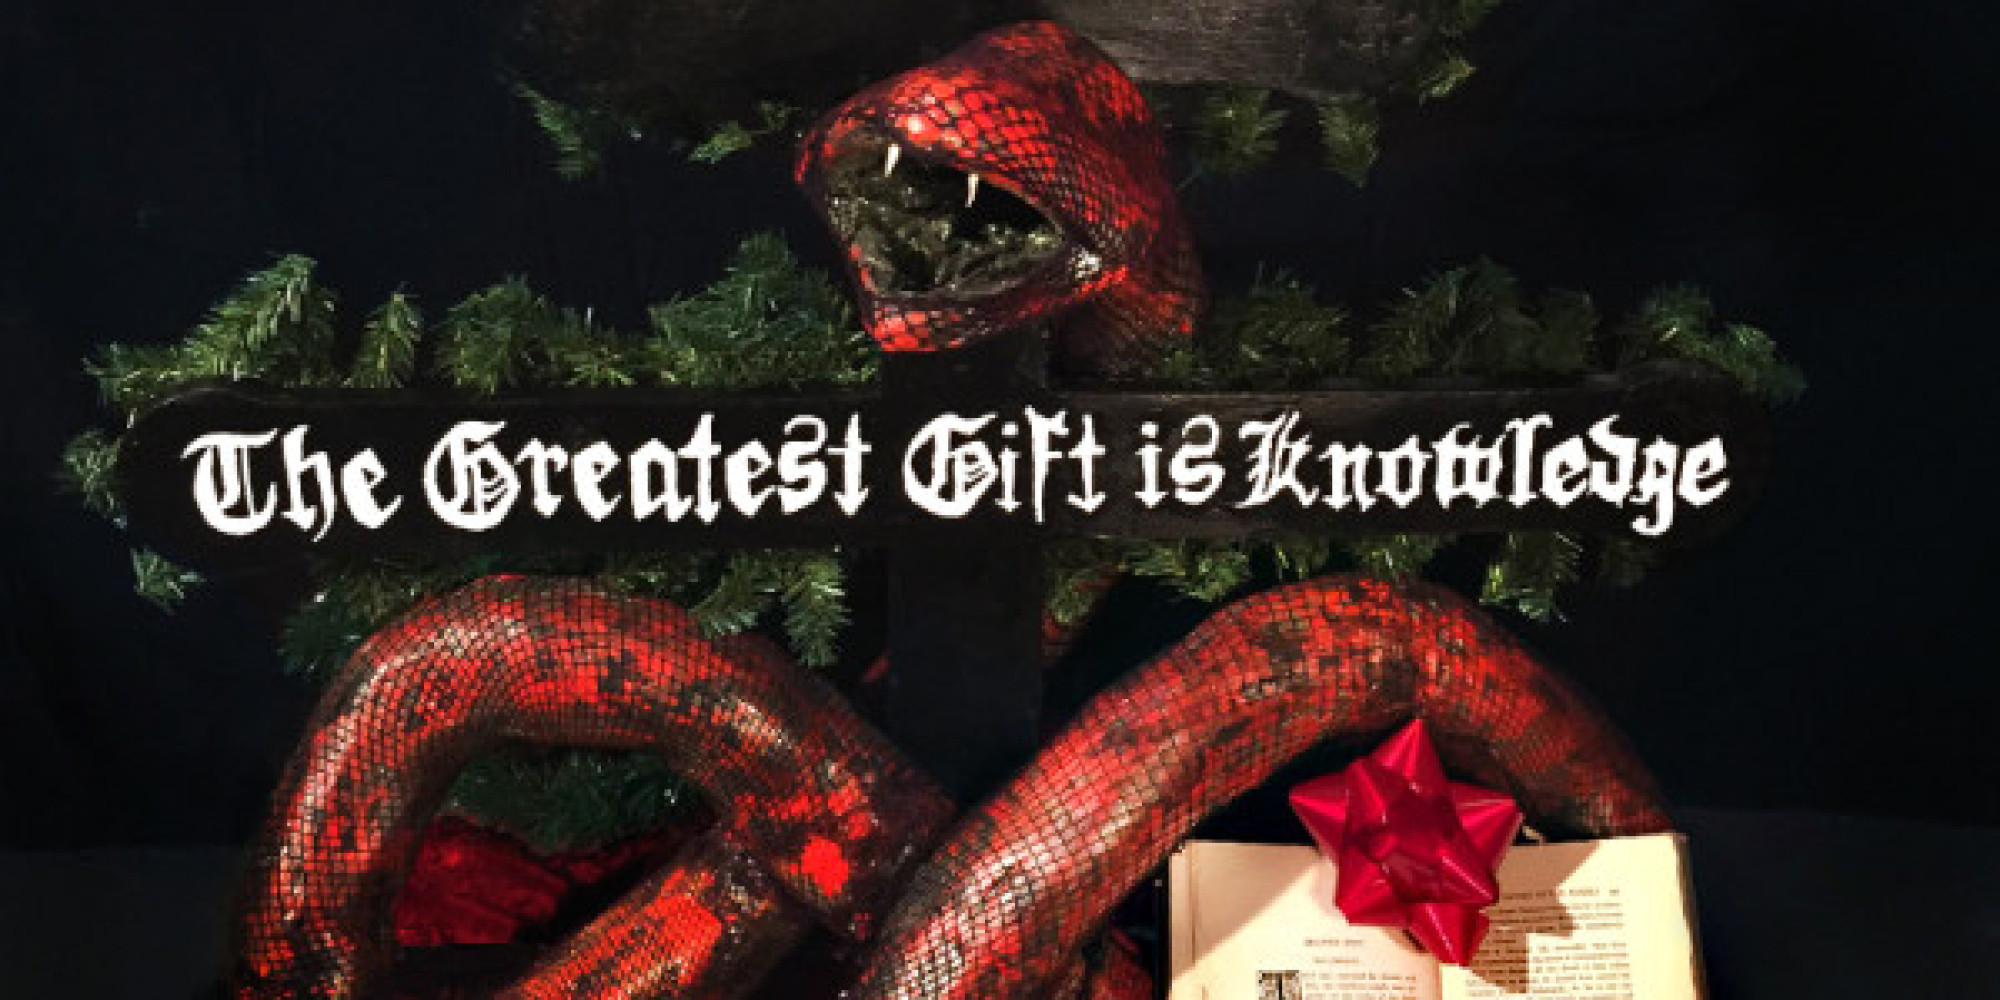 satanist group places holiday display at michigan statehouse  satanist group places holiday display at michigan statehouse huffpost